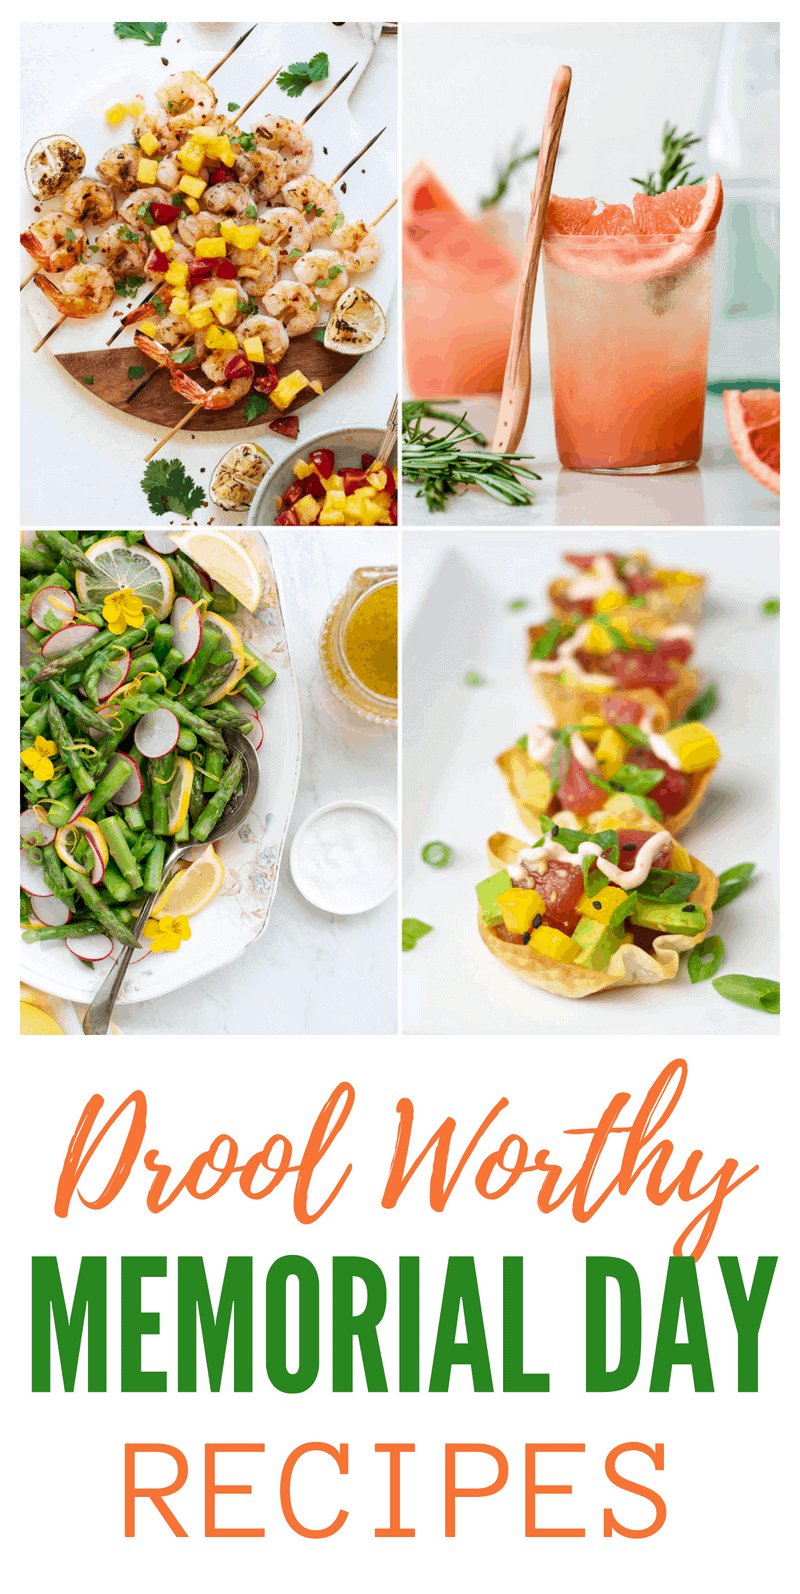 Drool worthy Memorial Day Recipes - Drool-worthy Memorial Day Recipes